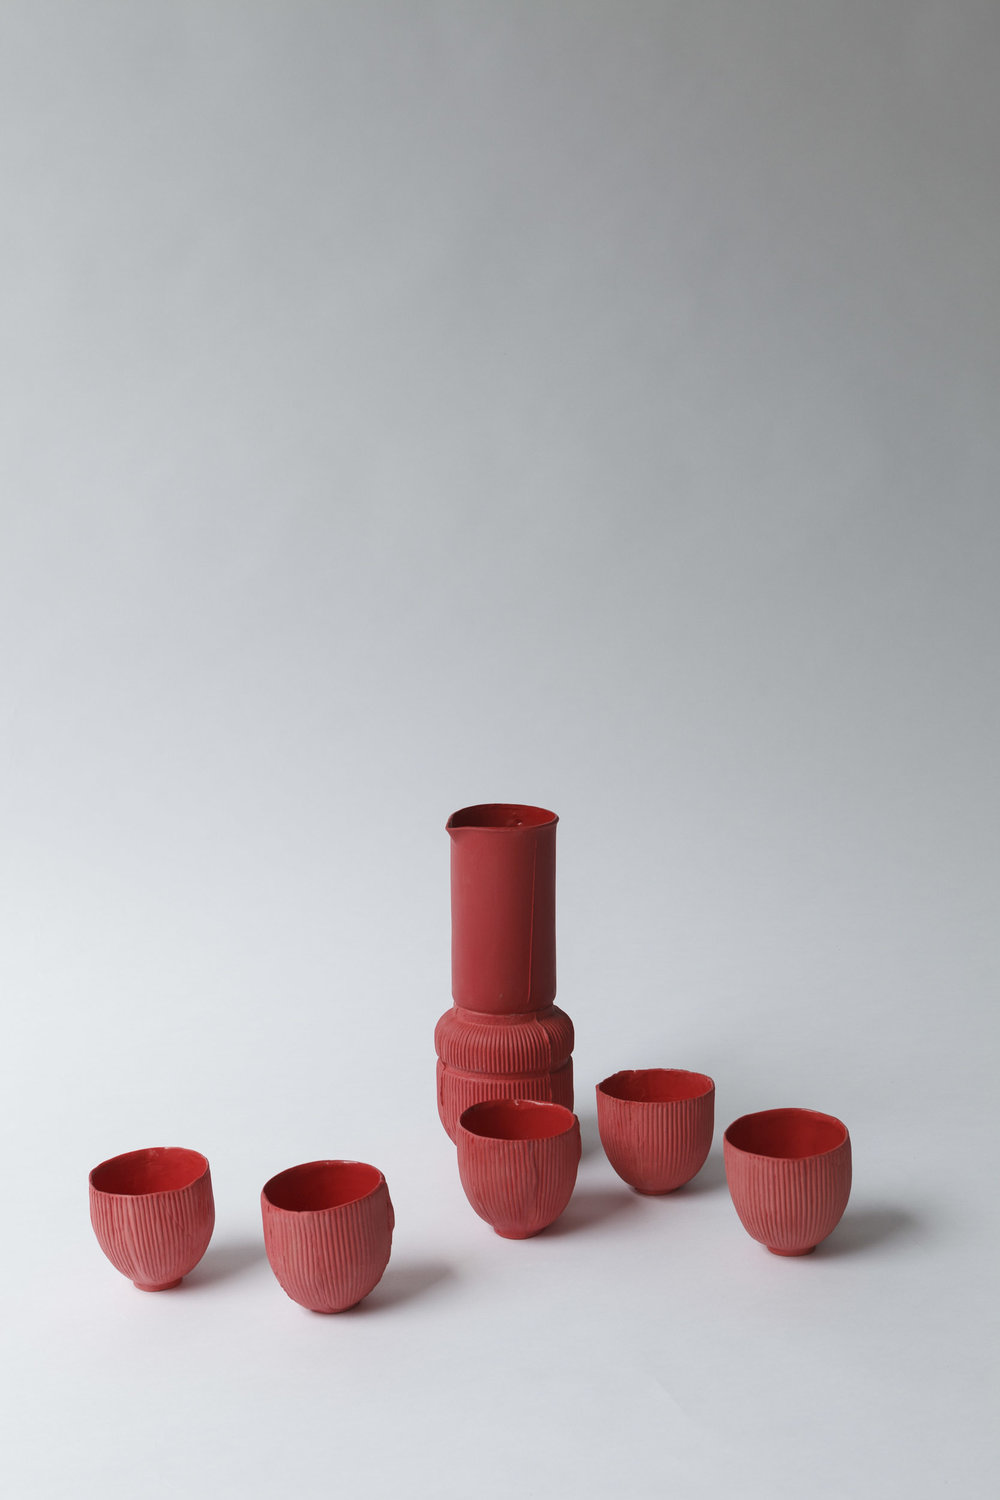 CERAMIC SERIES ITALIAN RED  Red porcelain manufactured by ceramic artist  Sarah Pschorn   Many thanks to Sarah for this wonderful collaboration!